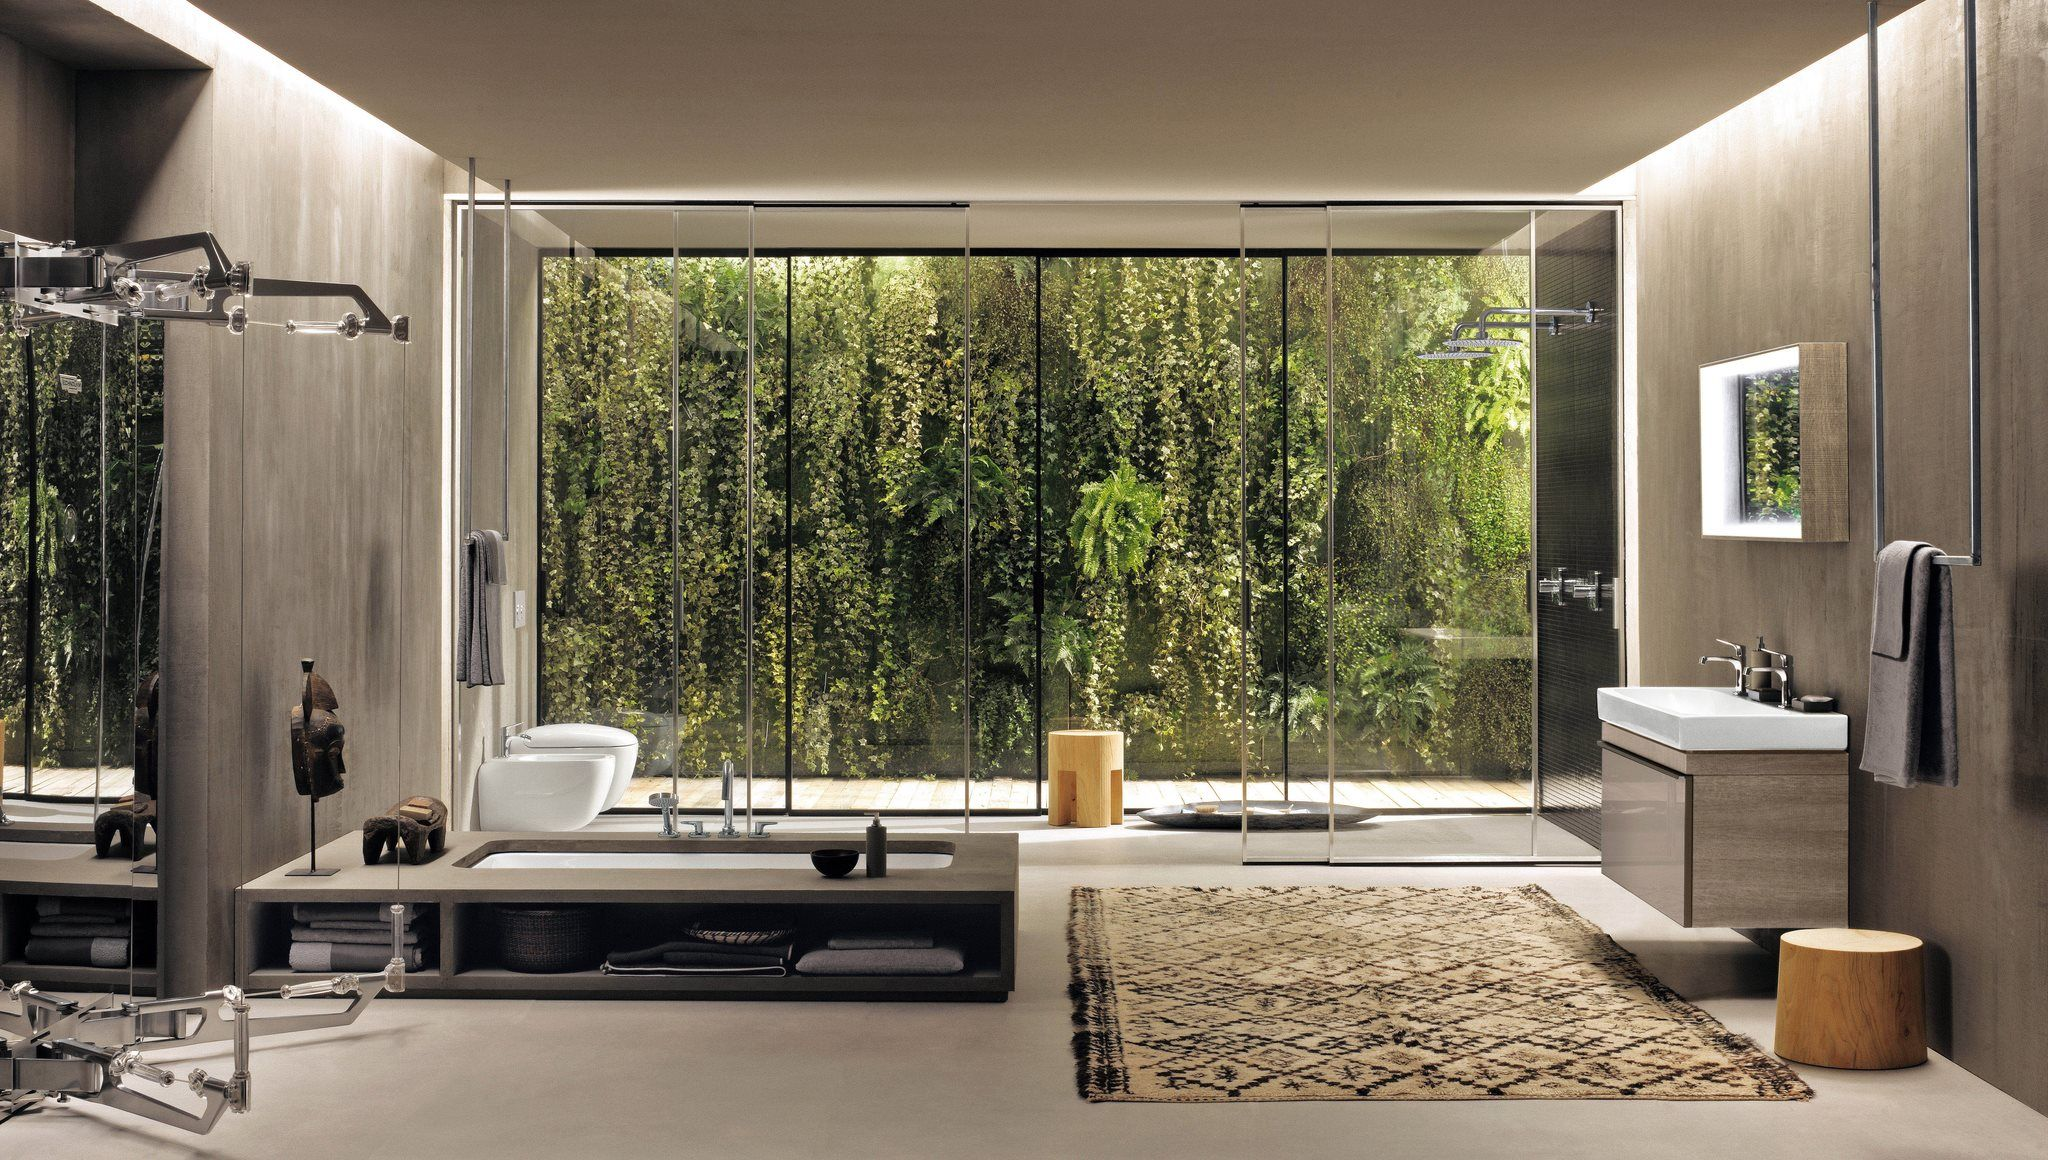 fascinating luxury bathroom. Luxury Bathroom Sanitaryware And Furniture Specialists, Keramag Design Will Exhibit At For The First Time This Year Be Showcasing Their Fascinating